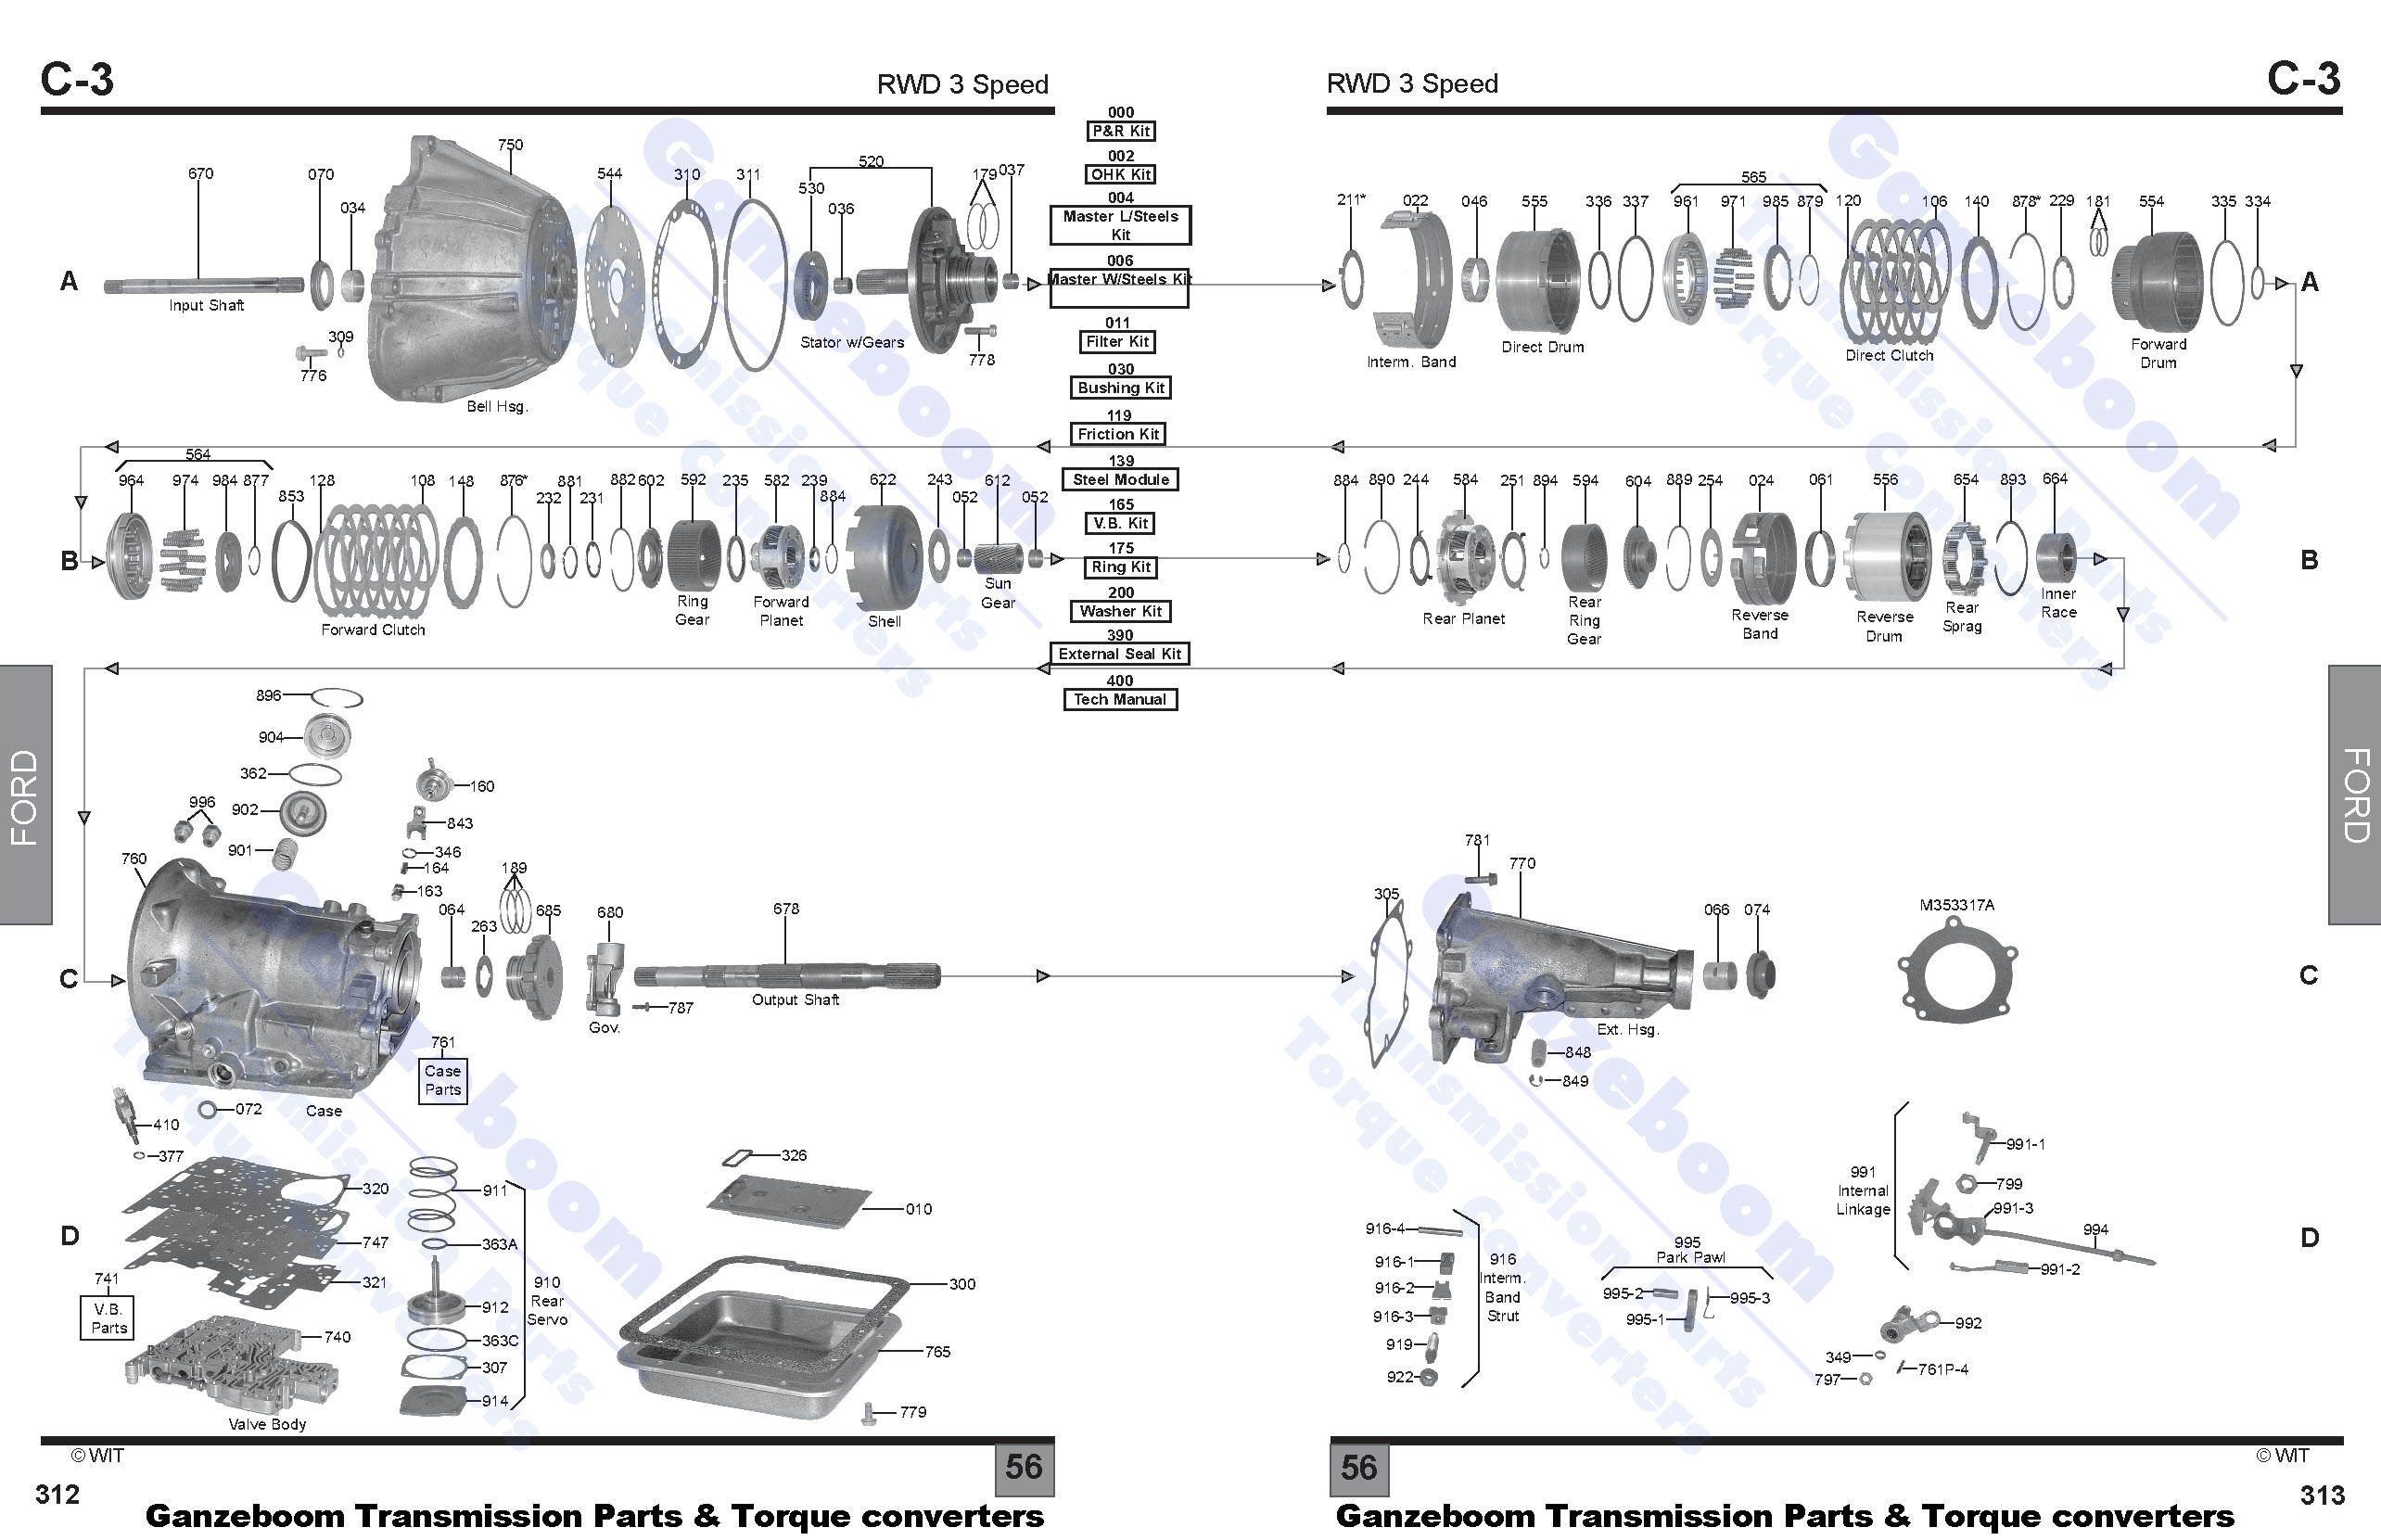 wiring diagram 4l60e transmission exploded view ford c3 transmission diagram - wiring diagram